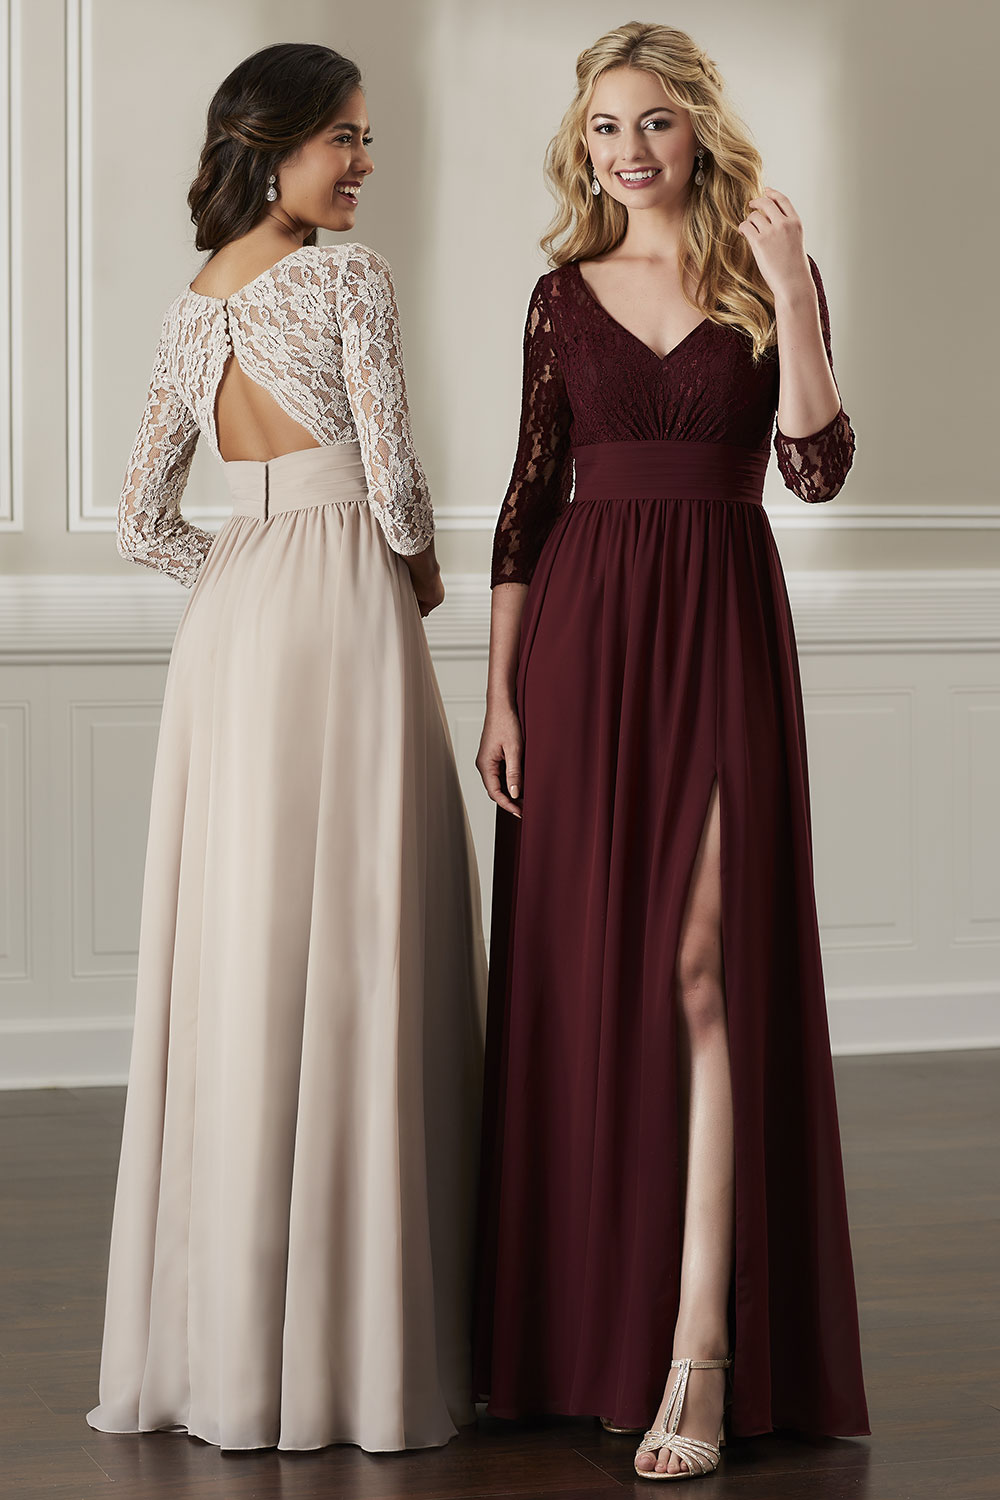 bridesmaid-dresses-jacquelin-bridals-canada-26846